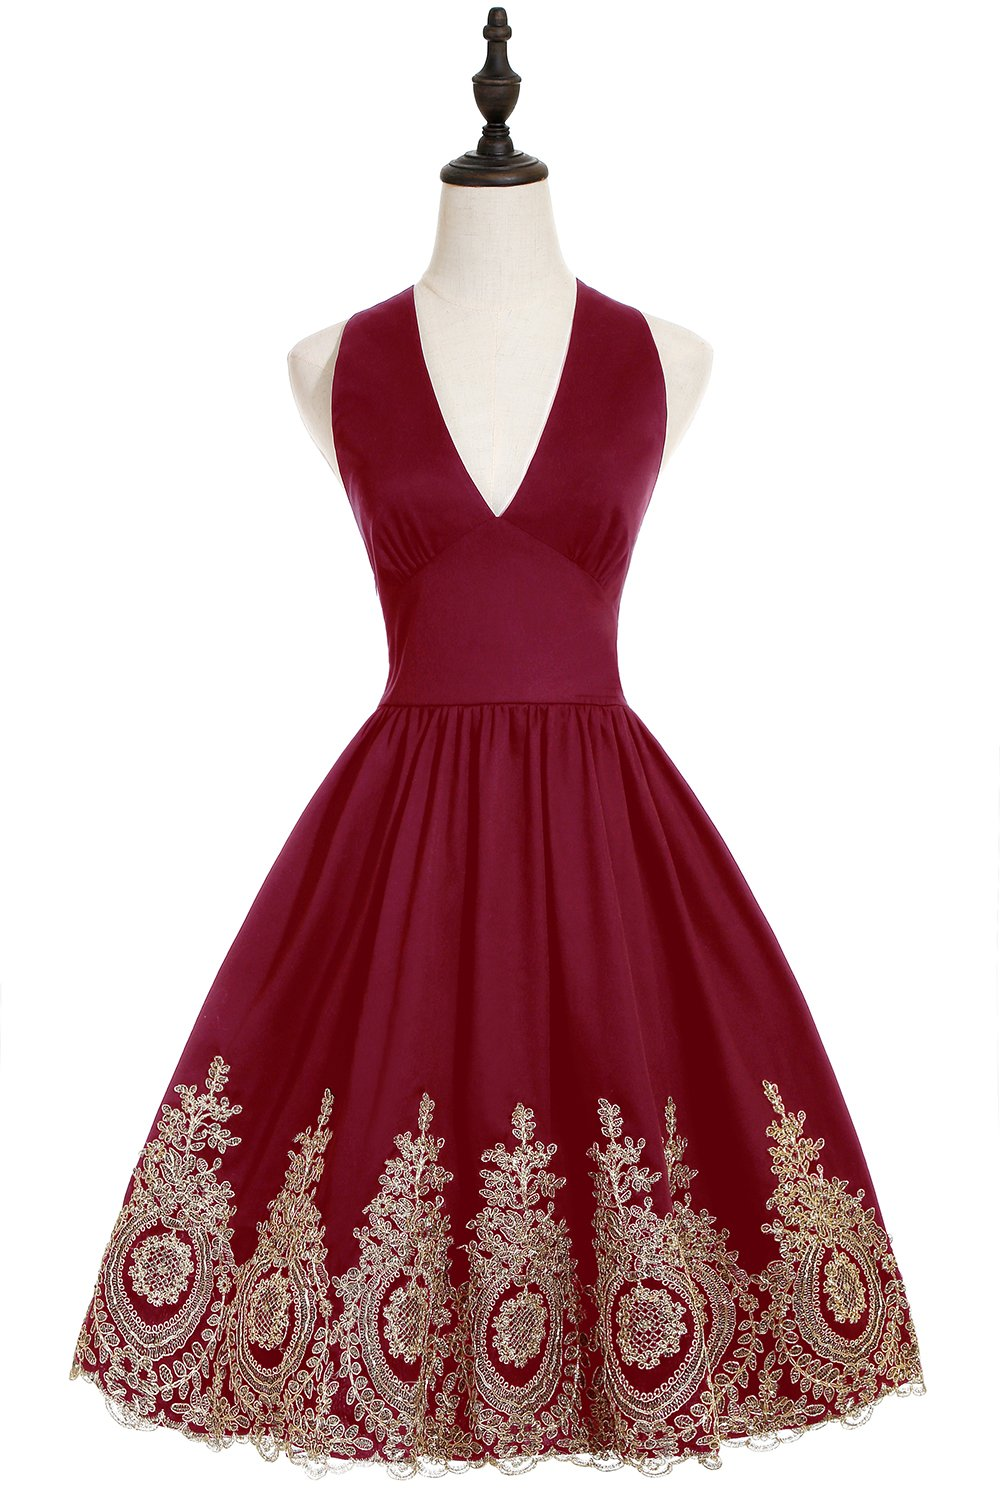 New Year Eve Christmas Party Dress 2019 Short Prom Dress Cocktail Bridesmaid Gowns With Gold Appliques Burgundy